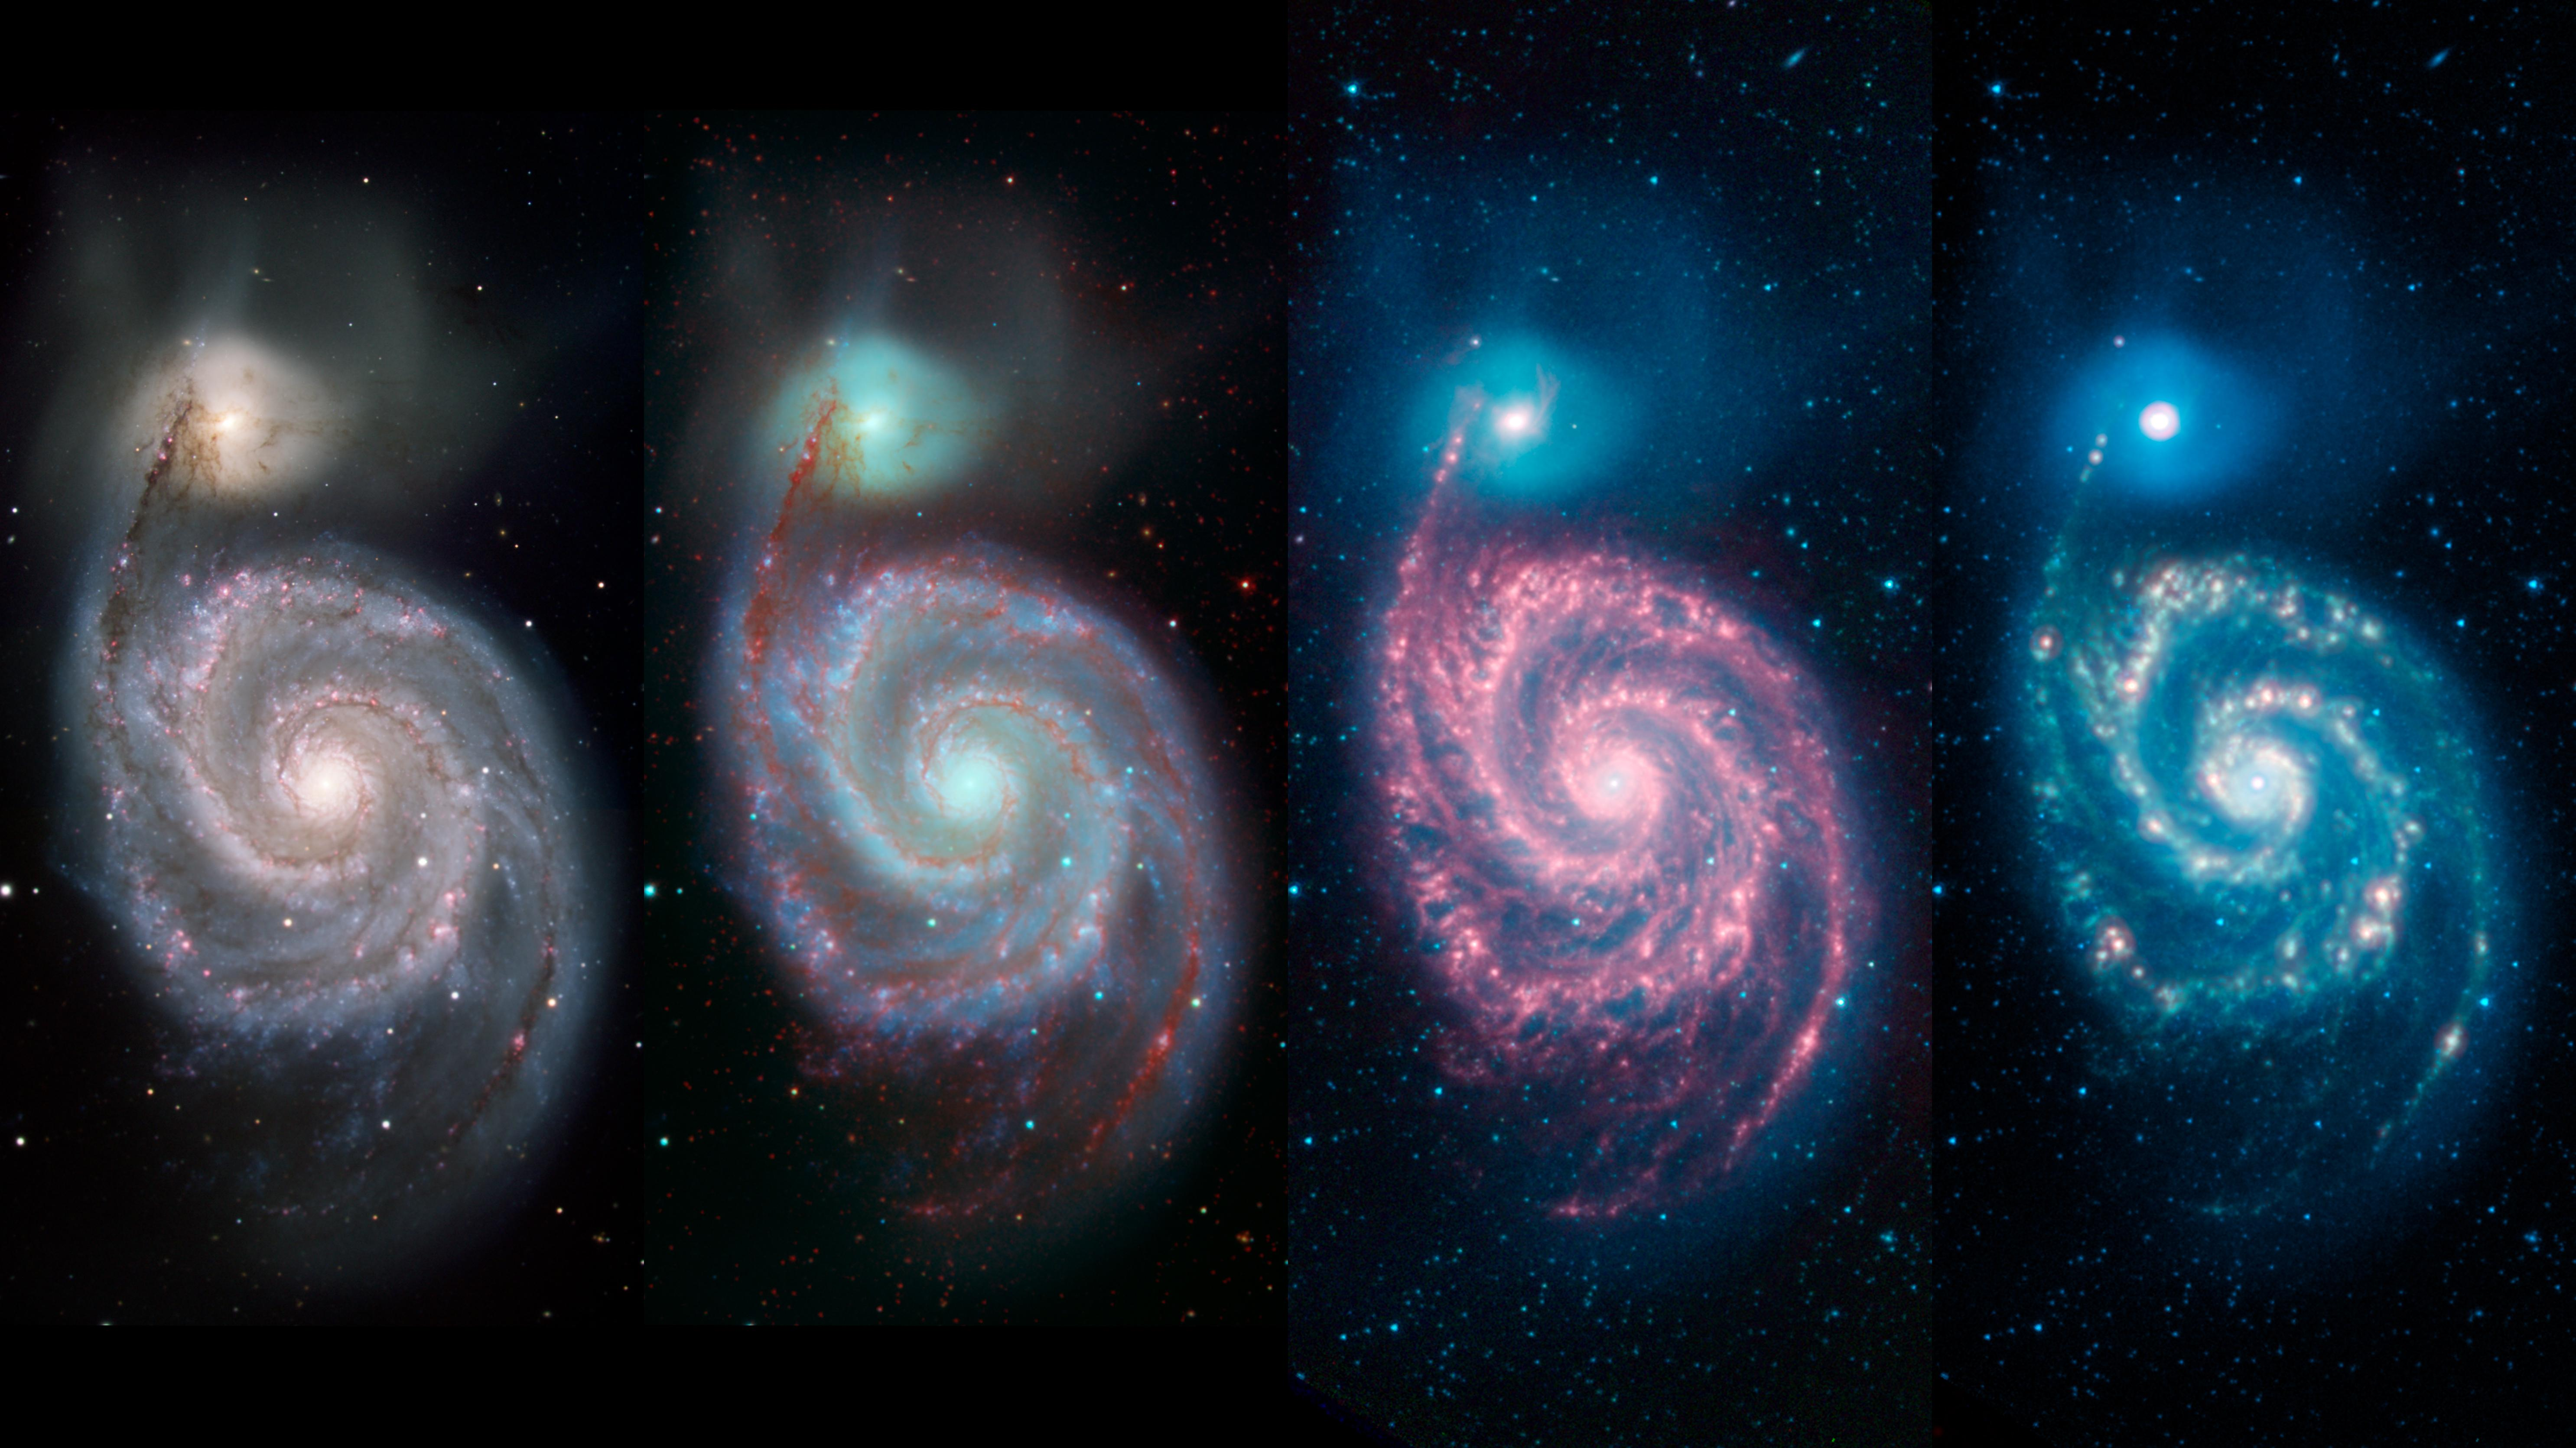 This multipanel image by NASAs Spitzer Space Telescope shows how different wavelengths of light can reveal different features of a cosmic object.